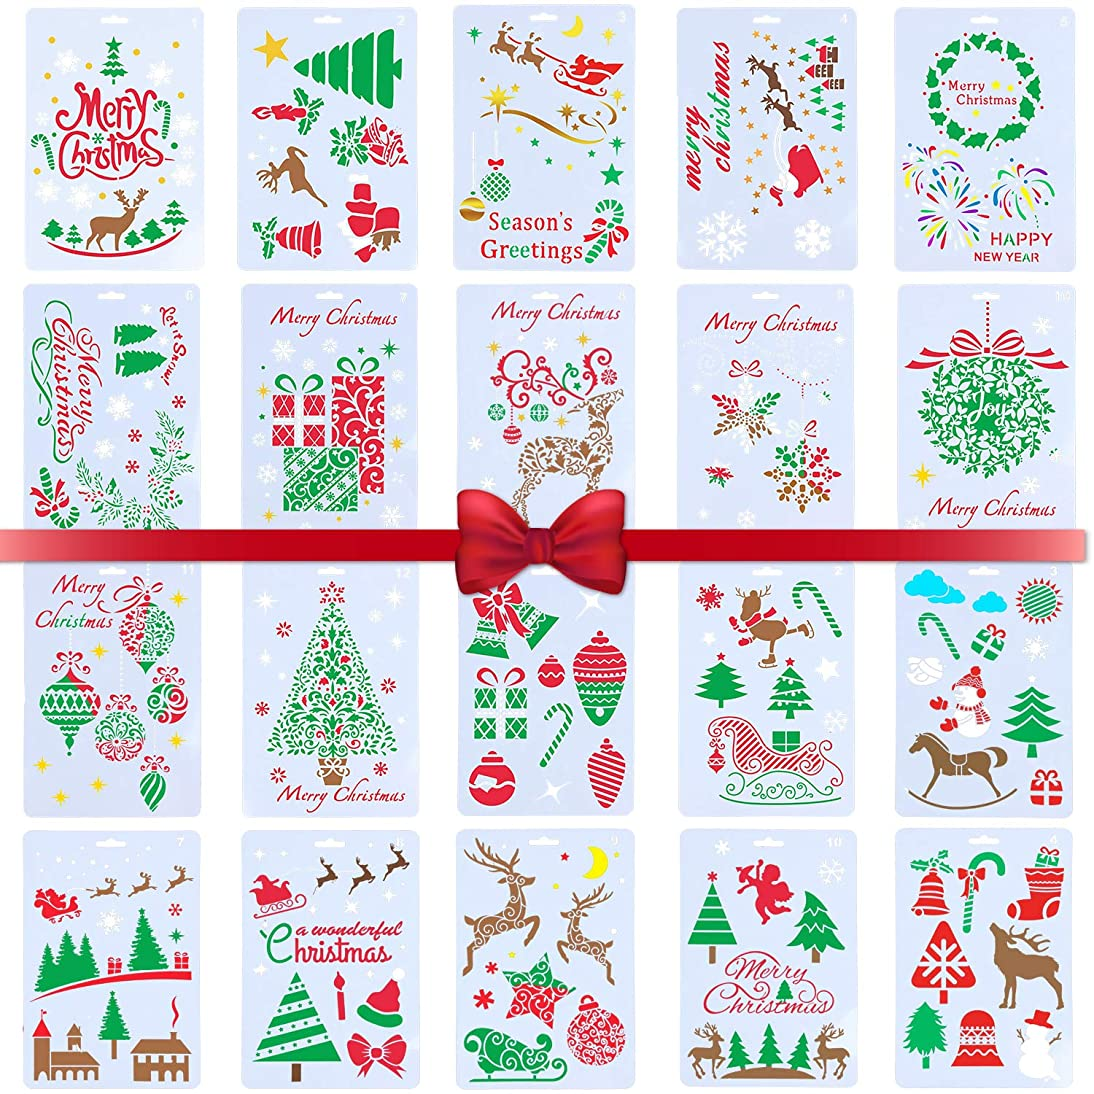 YOUTH UNION 20 Pcs Christmas Stencils Journal Template Painting Stencil - Merry Christmas, Santa Claus, Xmas Trees, Snowflakes, Reindeers,Gift Boxes for Card DIY Drawing Painting Craft Projects